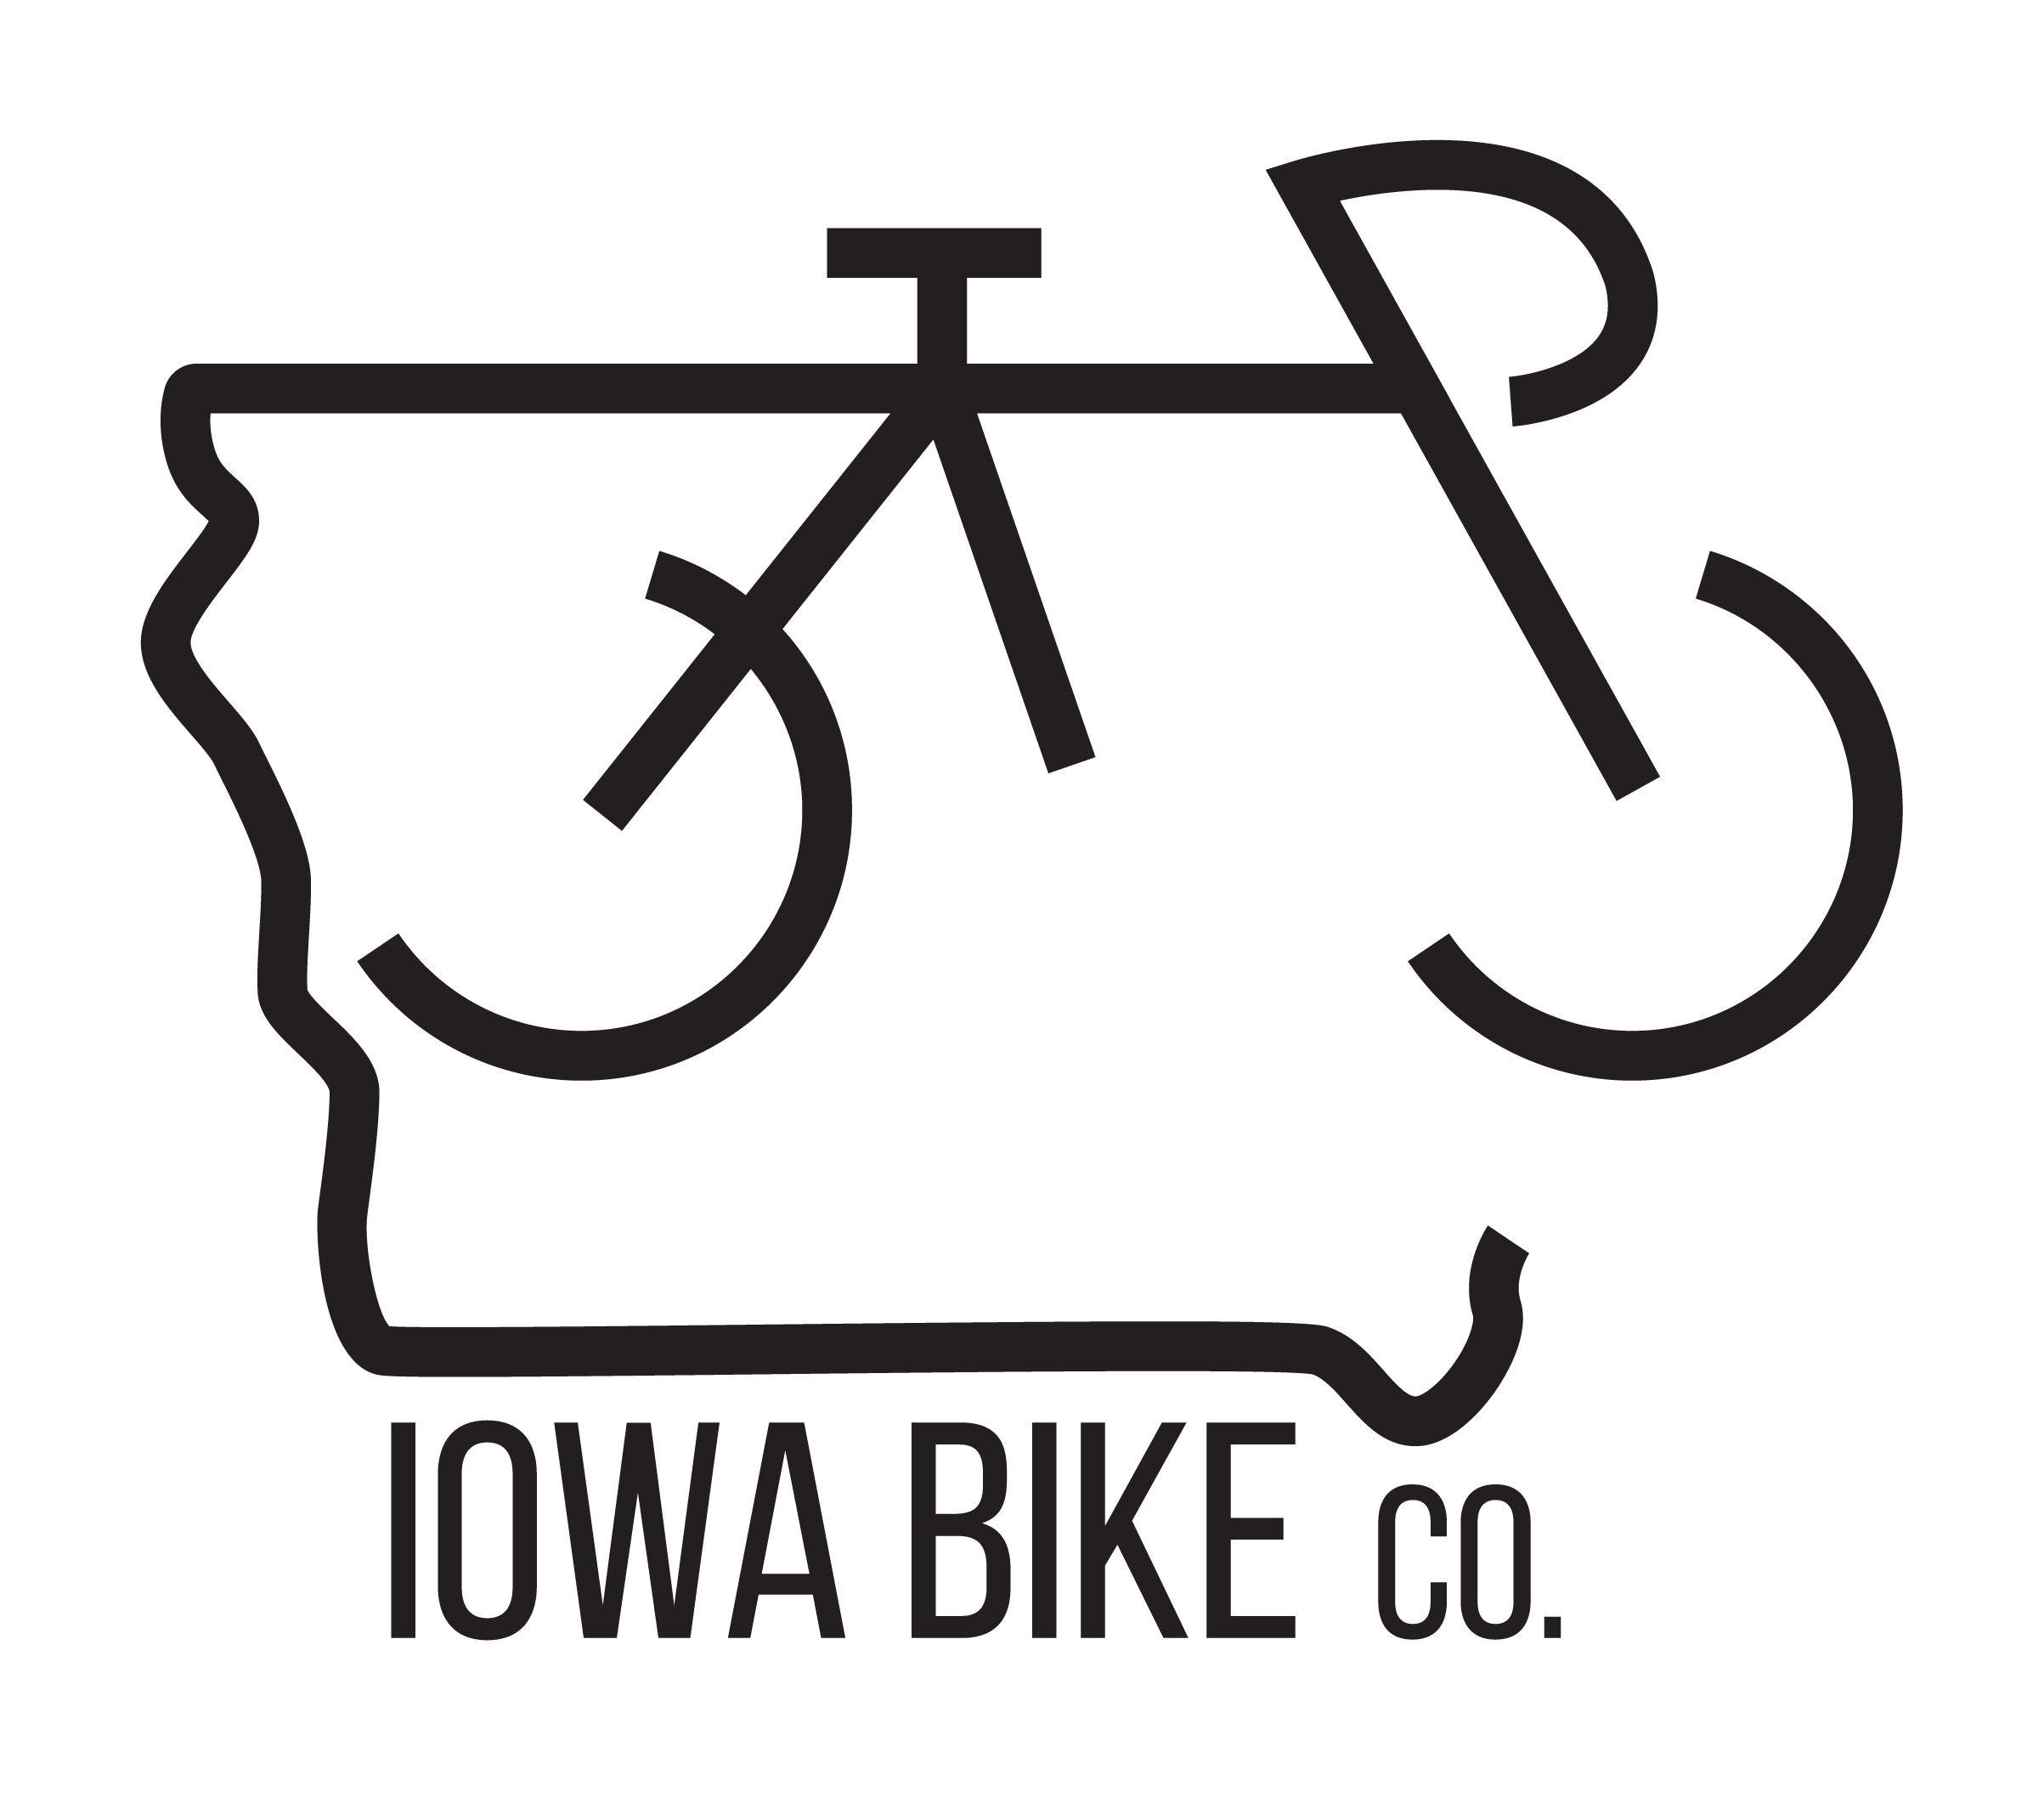 Iowa Bike Co. Home Page